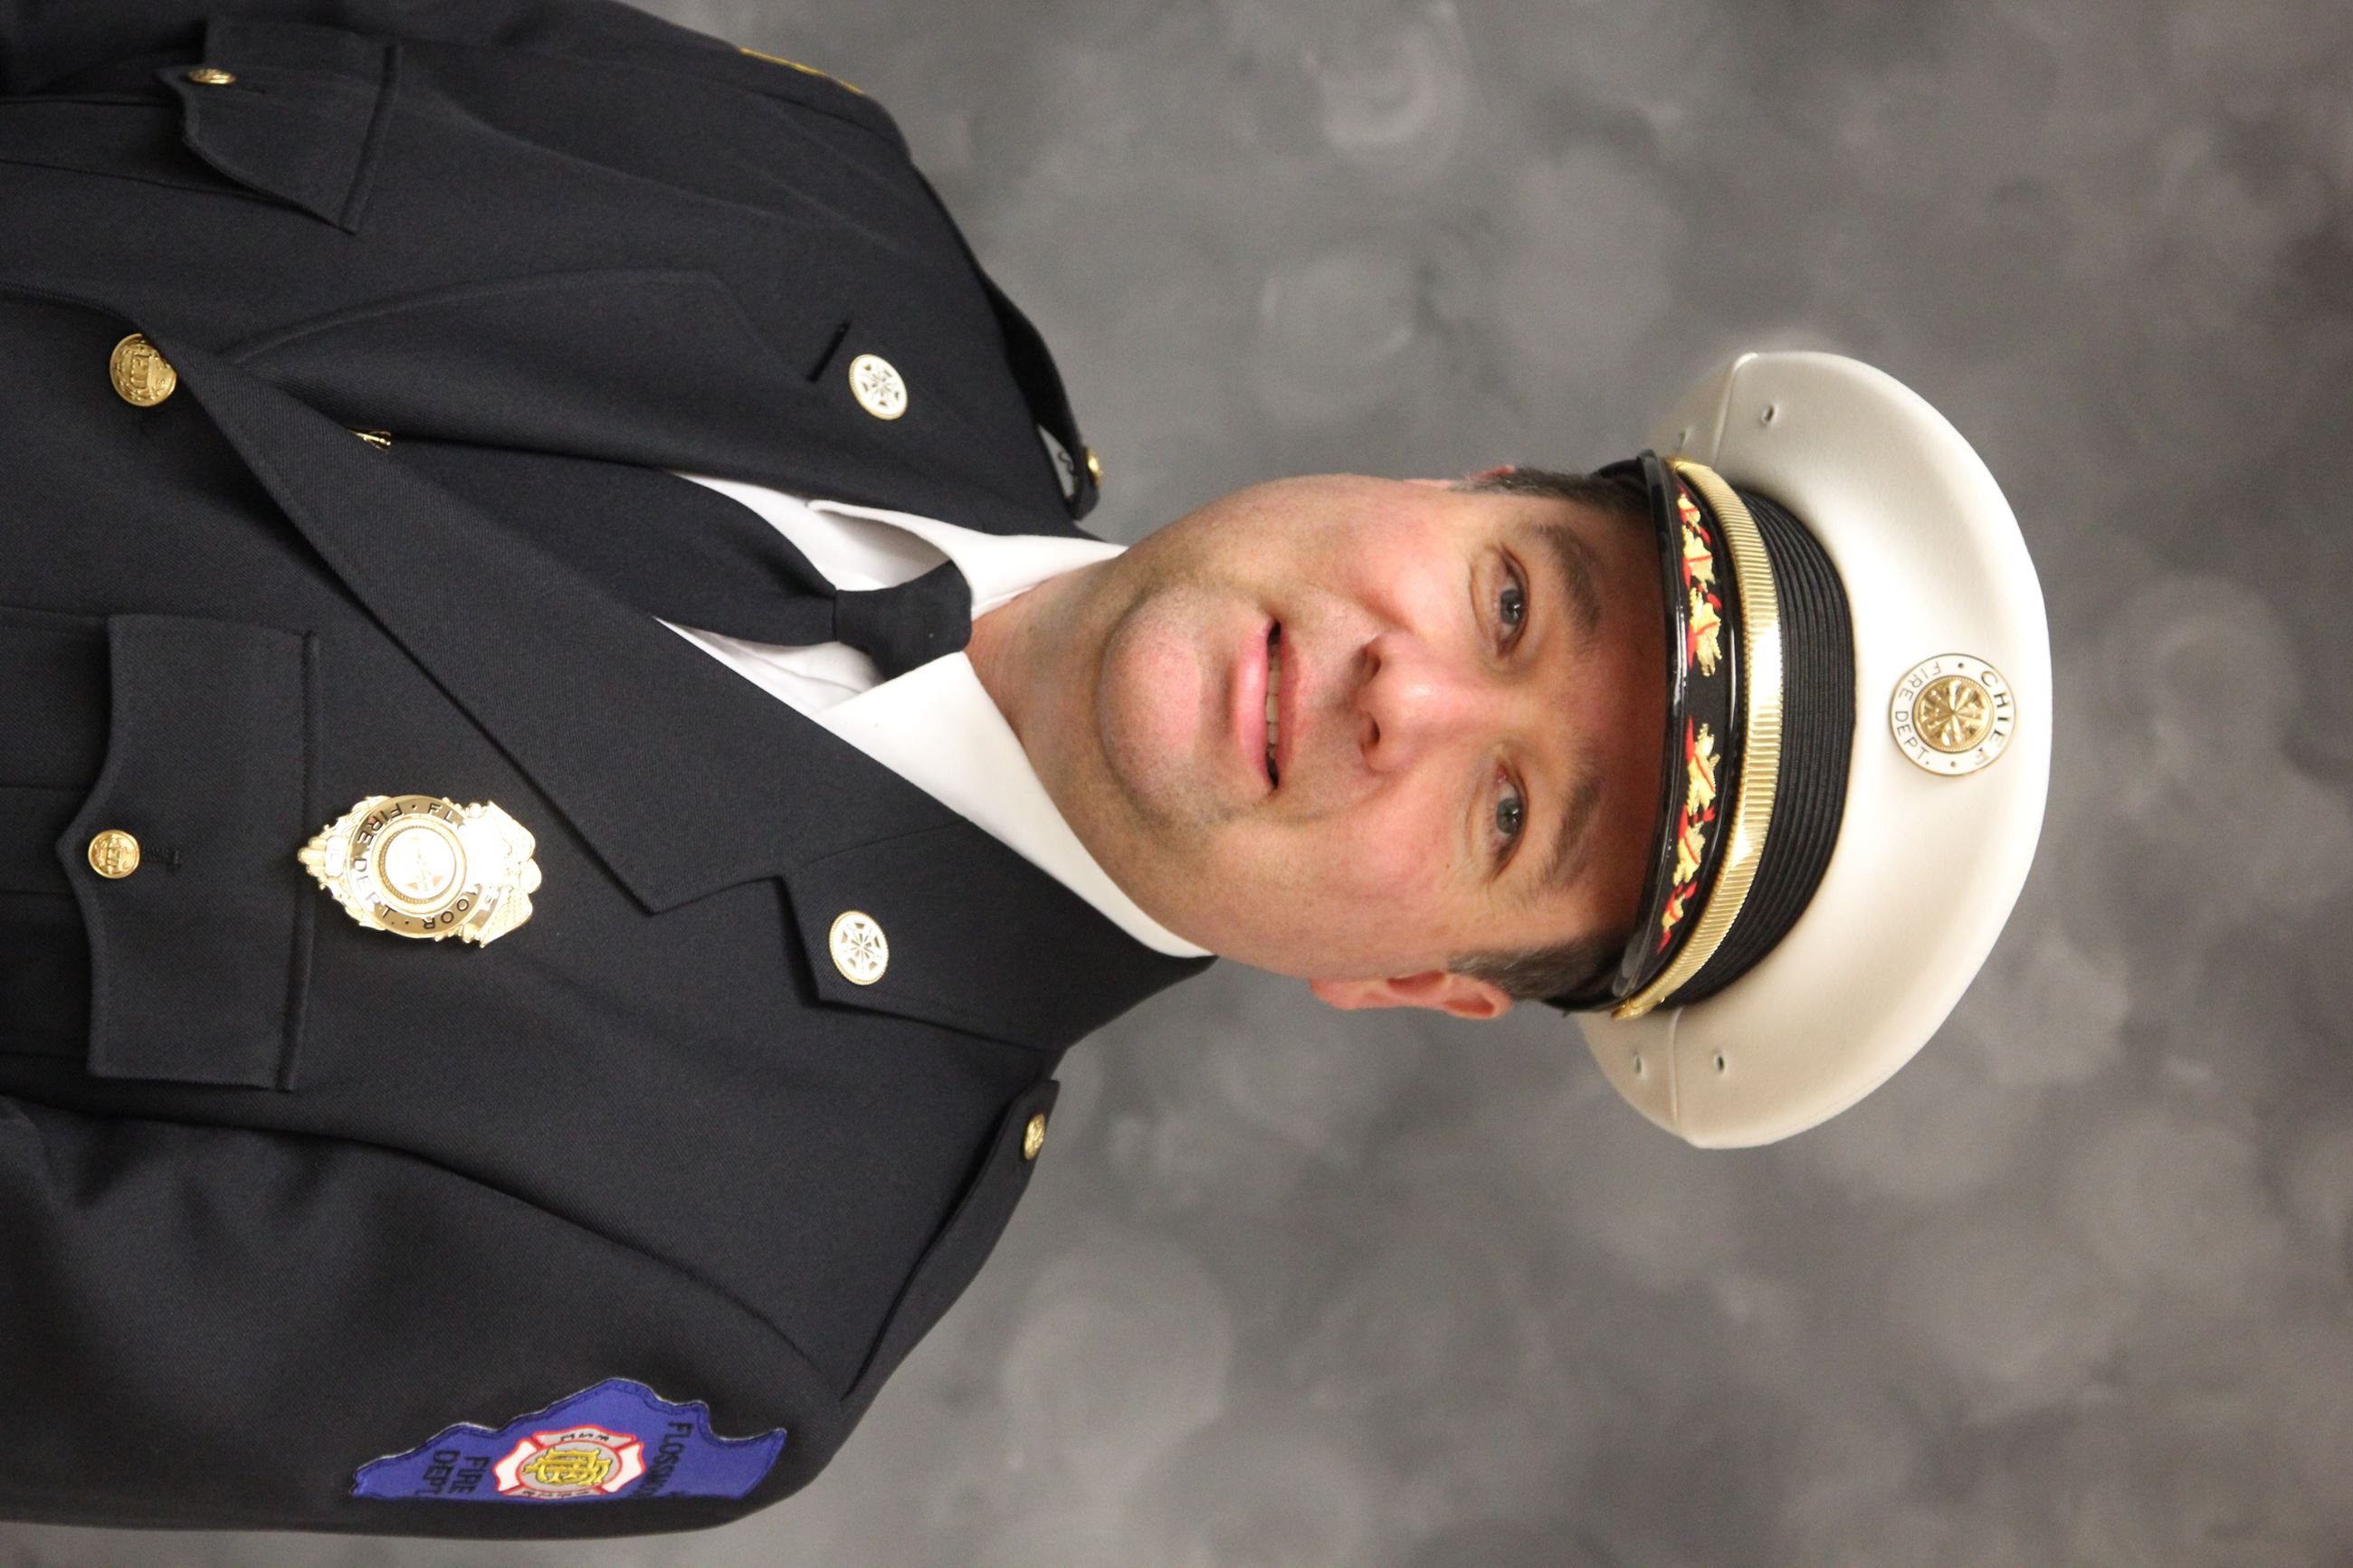 Current Fire Chief Christopher L. Sewell